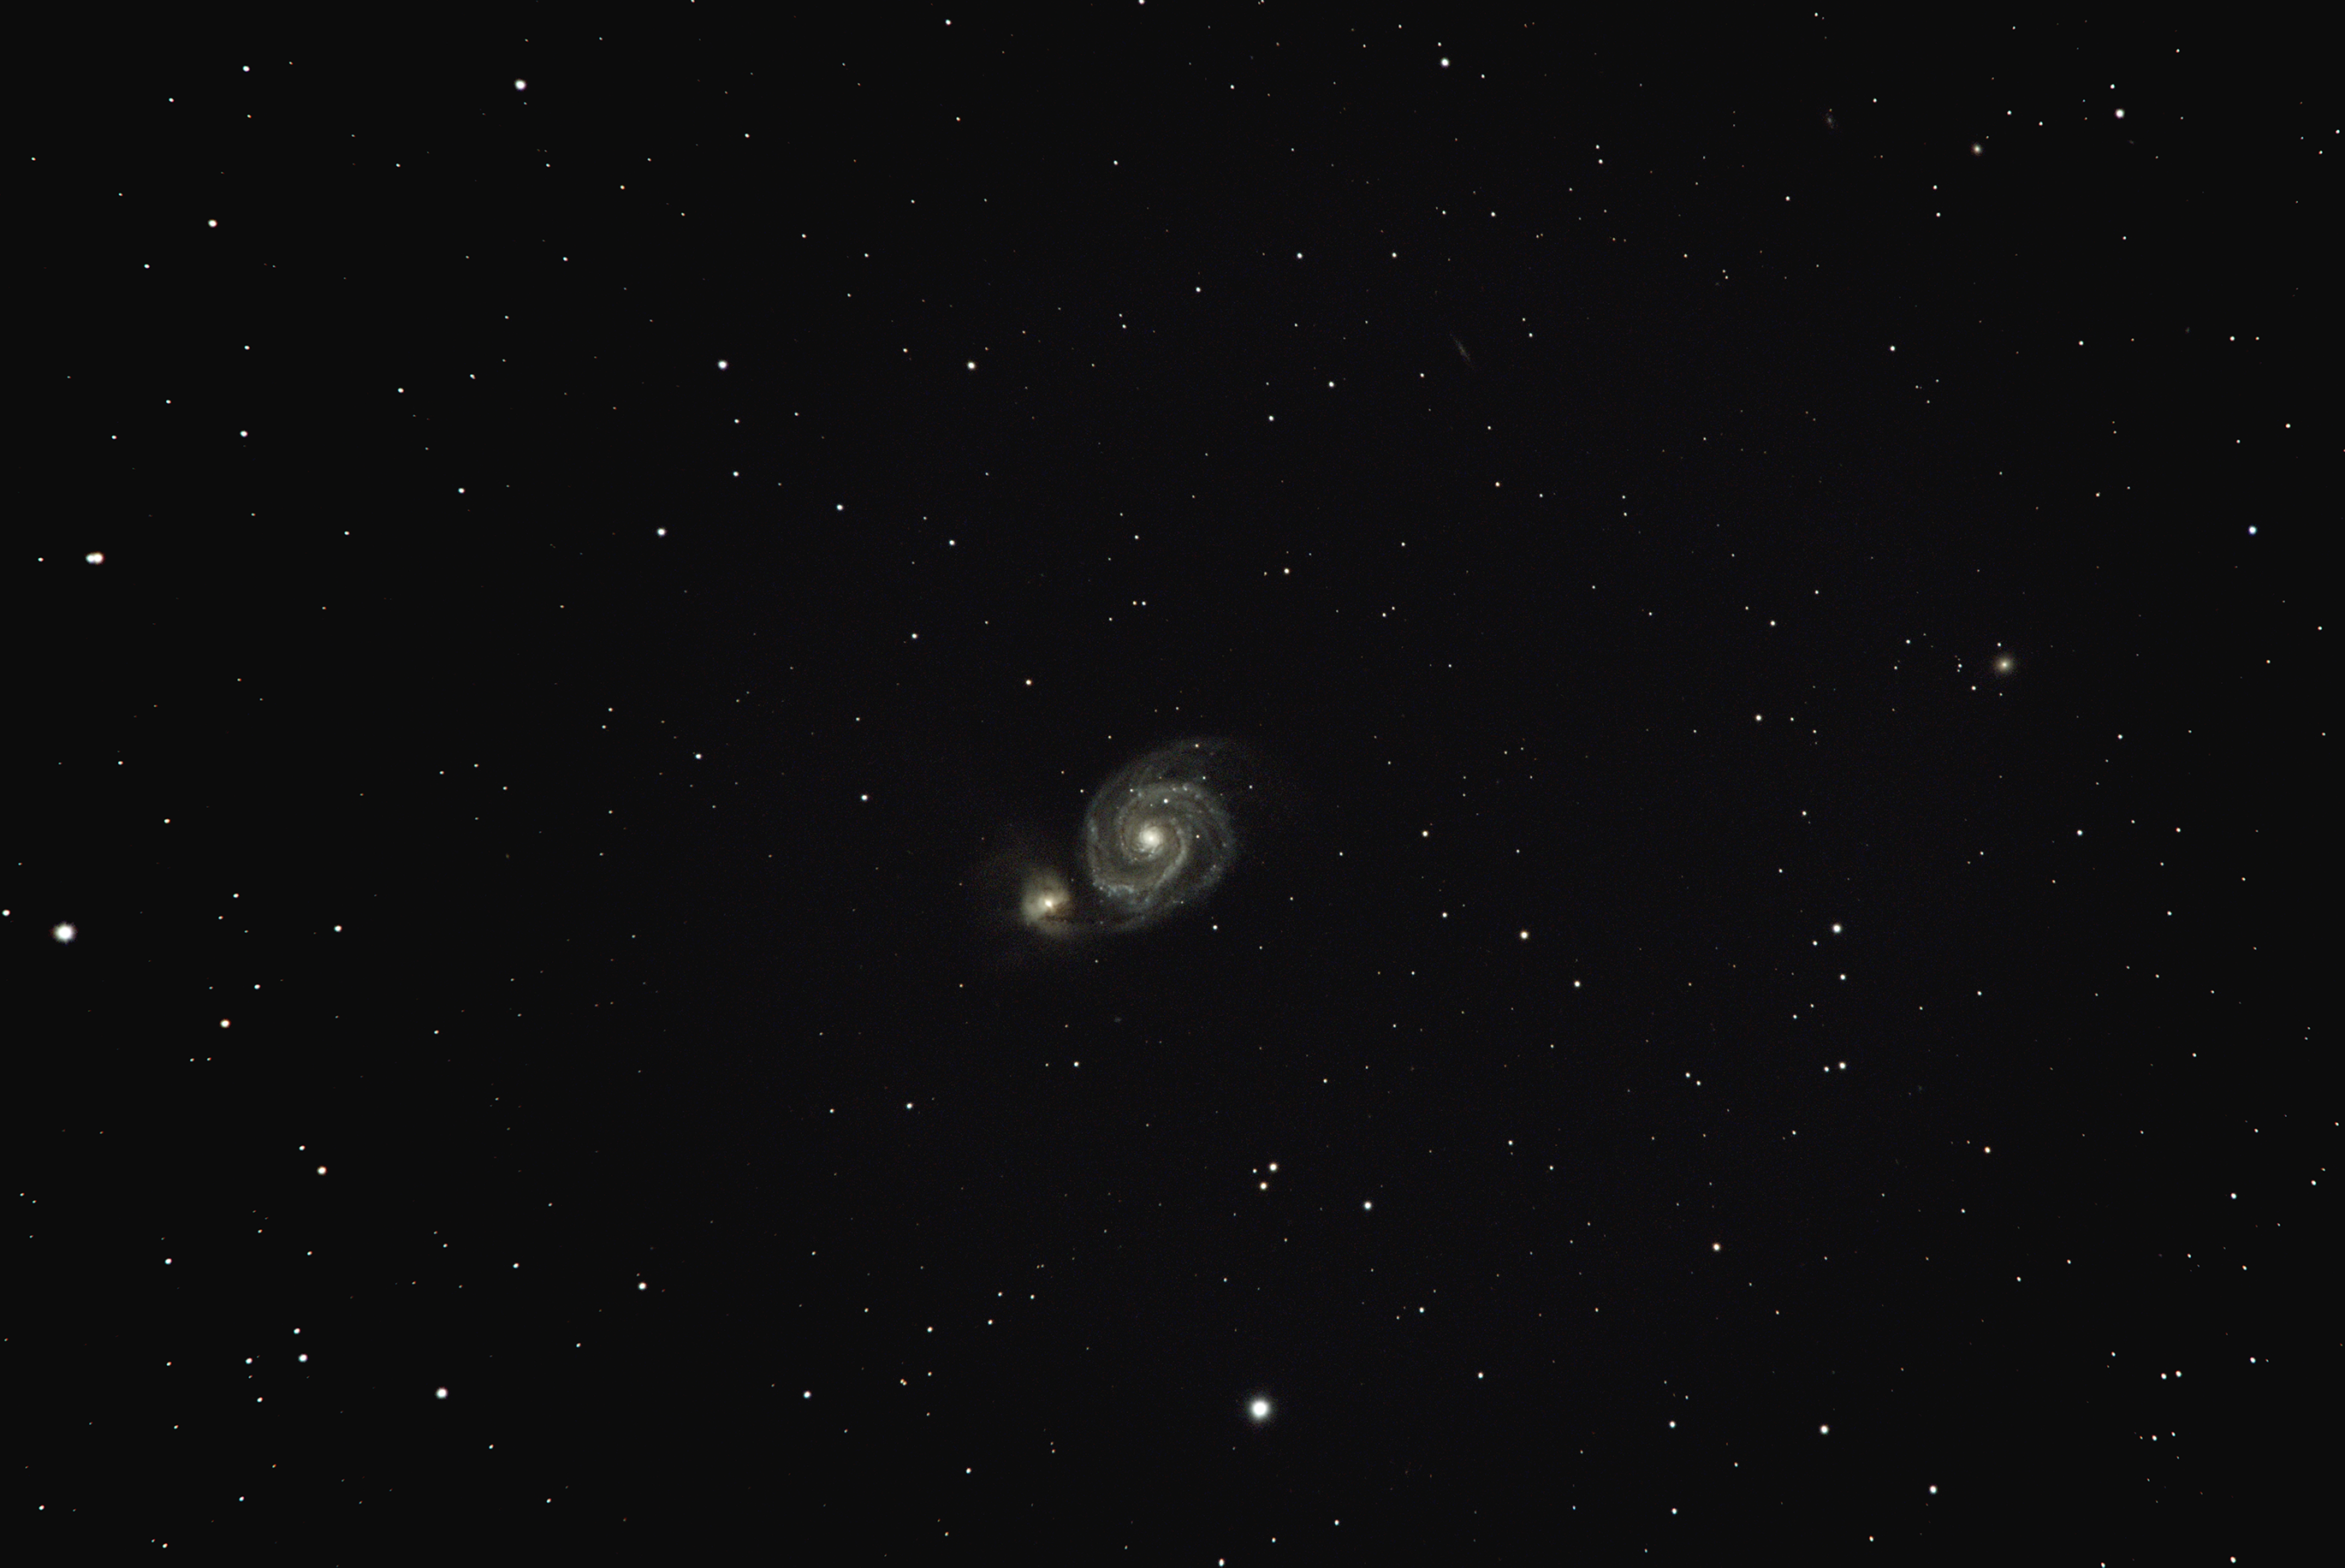 M51 (Ramsay McIver) Takahashi FSQ-106ED with a Tak x 1.6 adaptor and a Canon x 1.4 on a Celestron AVX unguided with a Canon Ra. 31 x 30s @ ISO 6400 and 25 x 15s @ ISO 25600 stacked in APP and processed in Photoshop. No flats or darks were used to make this image. I think using the Tak 1.6 and the Canon 1.4 is just about taking the magnification as far as I can go, similar to a 1187mm lens on a FF camera.